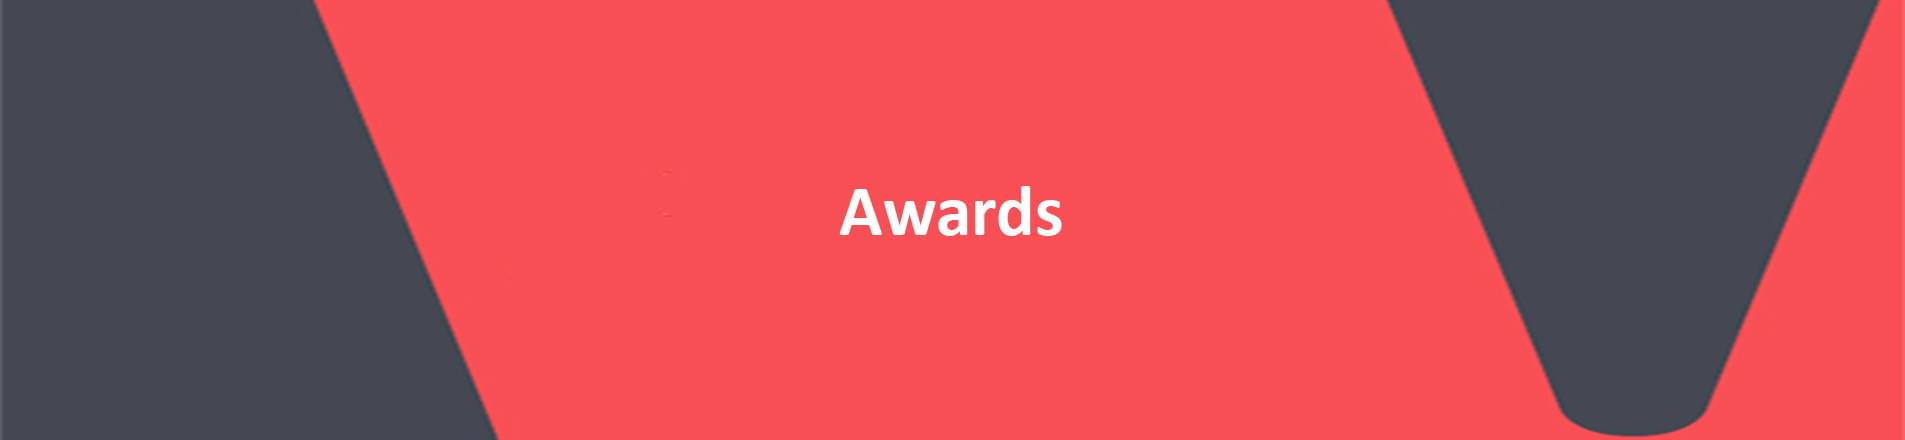 Word awards on red VERCIDA branded background.